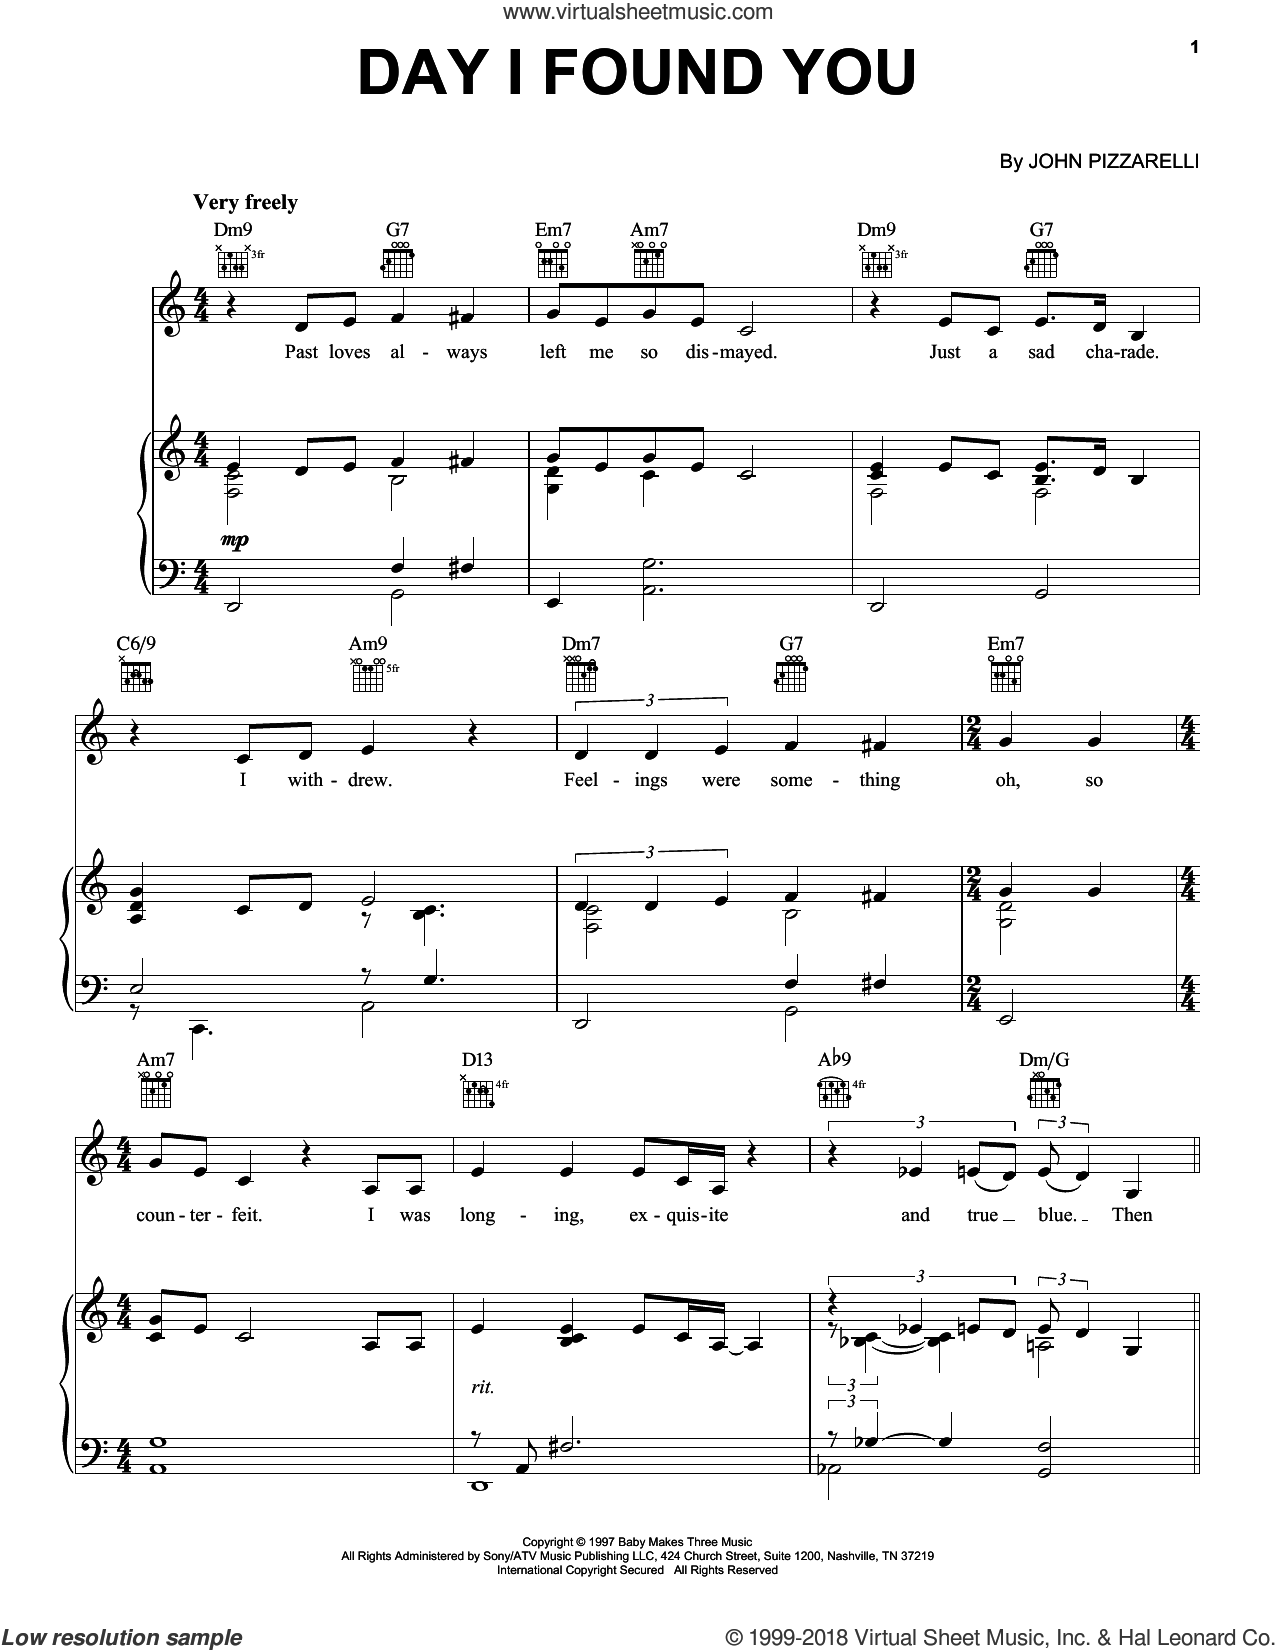 Day I Found You sheet music for voice, piano or guitar by John Pizzarelli, intermediate skill level